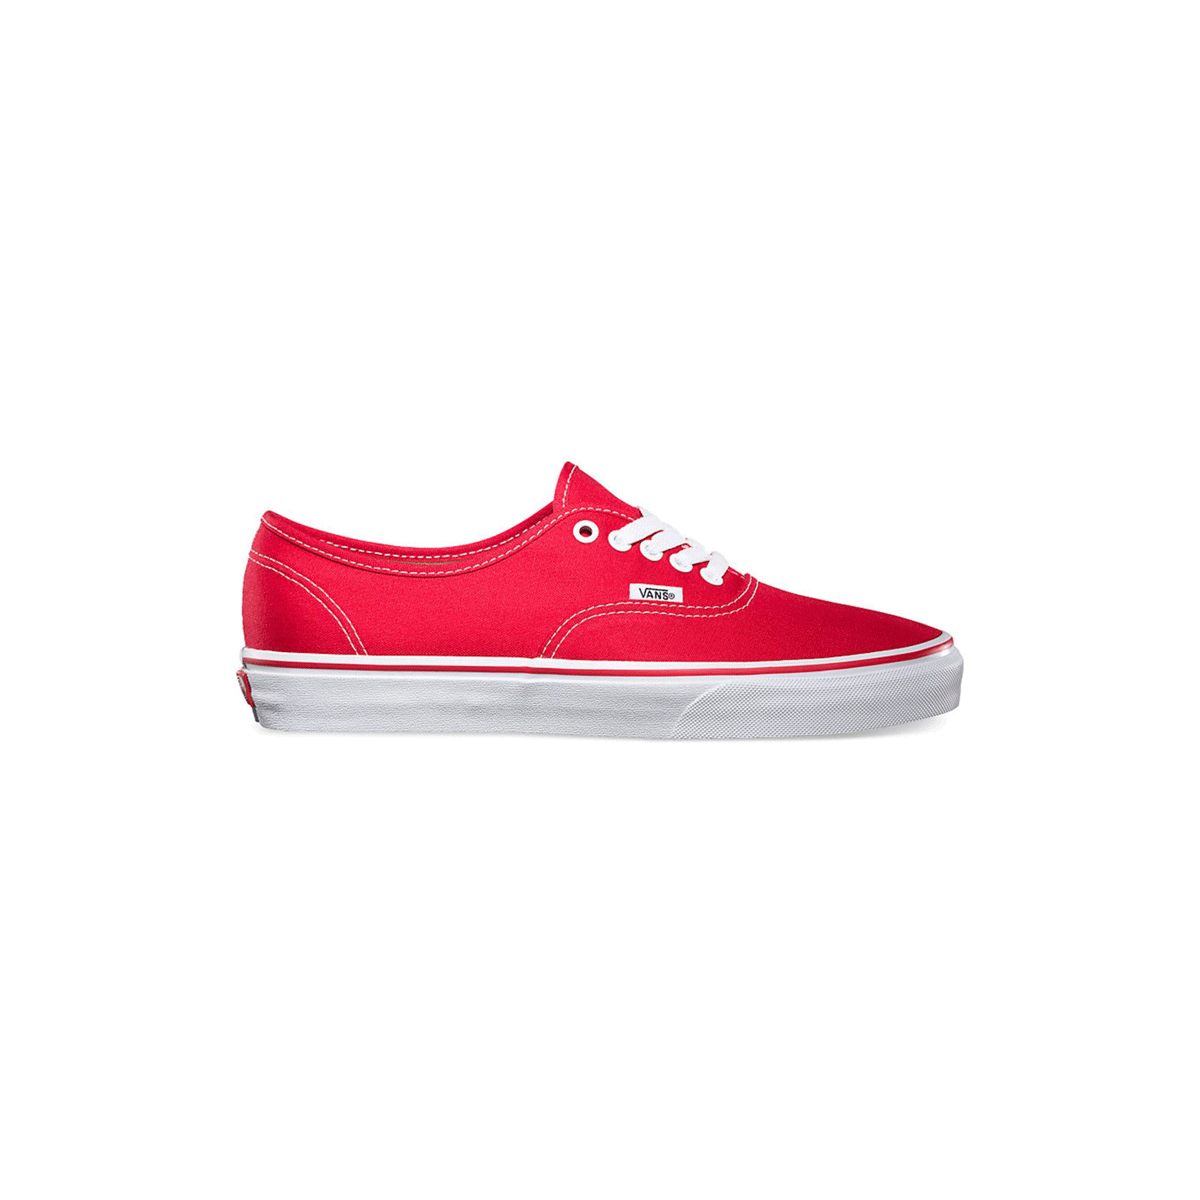 Red Baskets Chaussures Authentic Vans Classic Skate Femme Rouge xpwqIOw